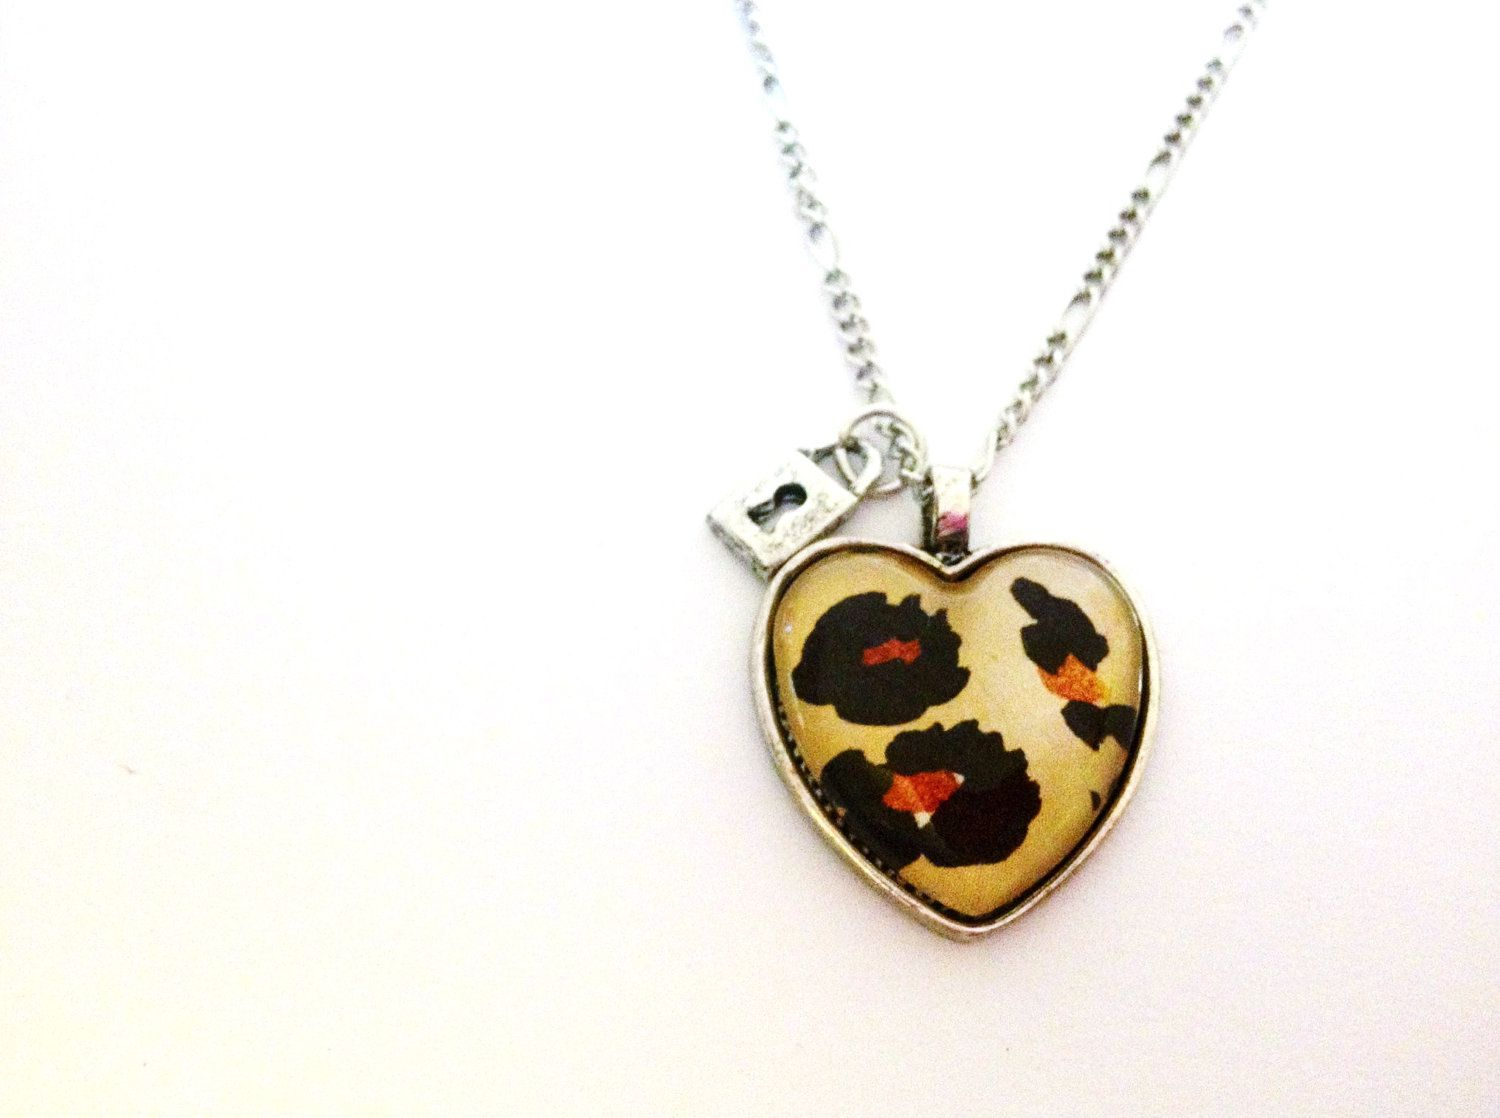 Yellow Black and Brown Cheetah Leopard Print Lock Charm Glass Pendant Necklace, via Etsy.